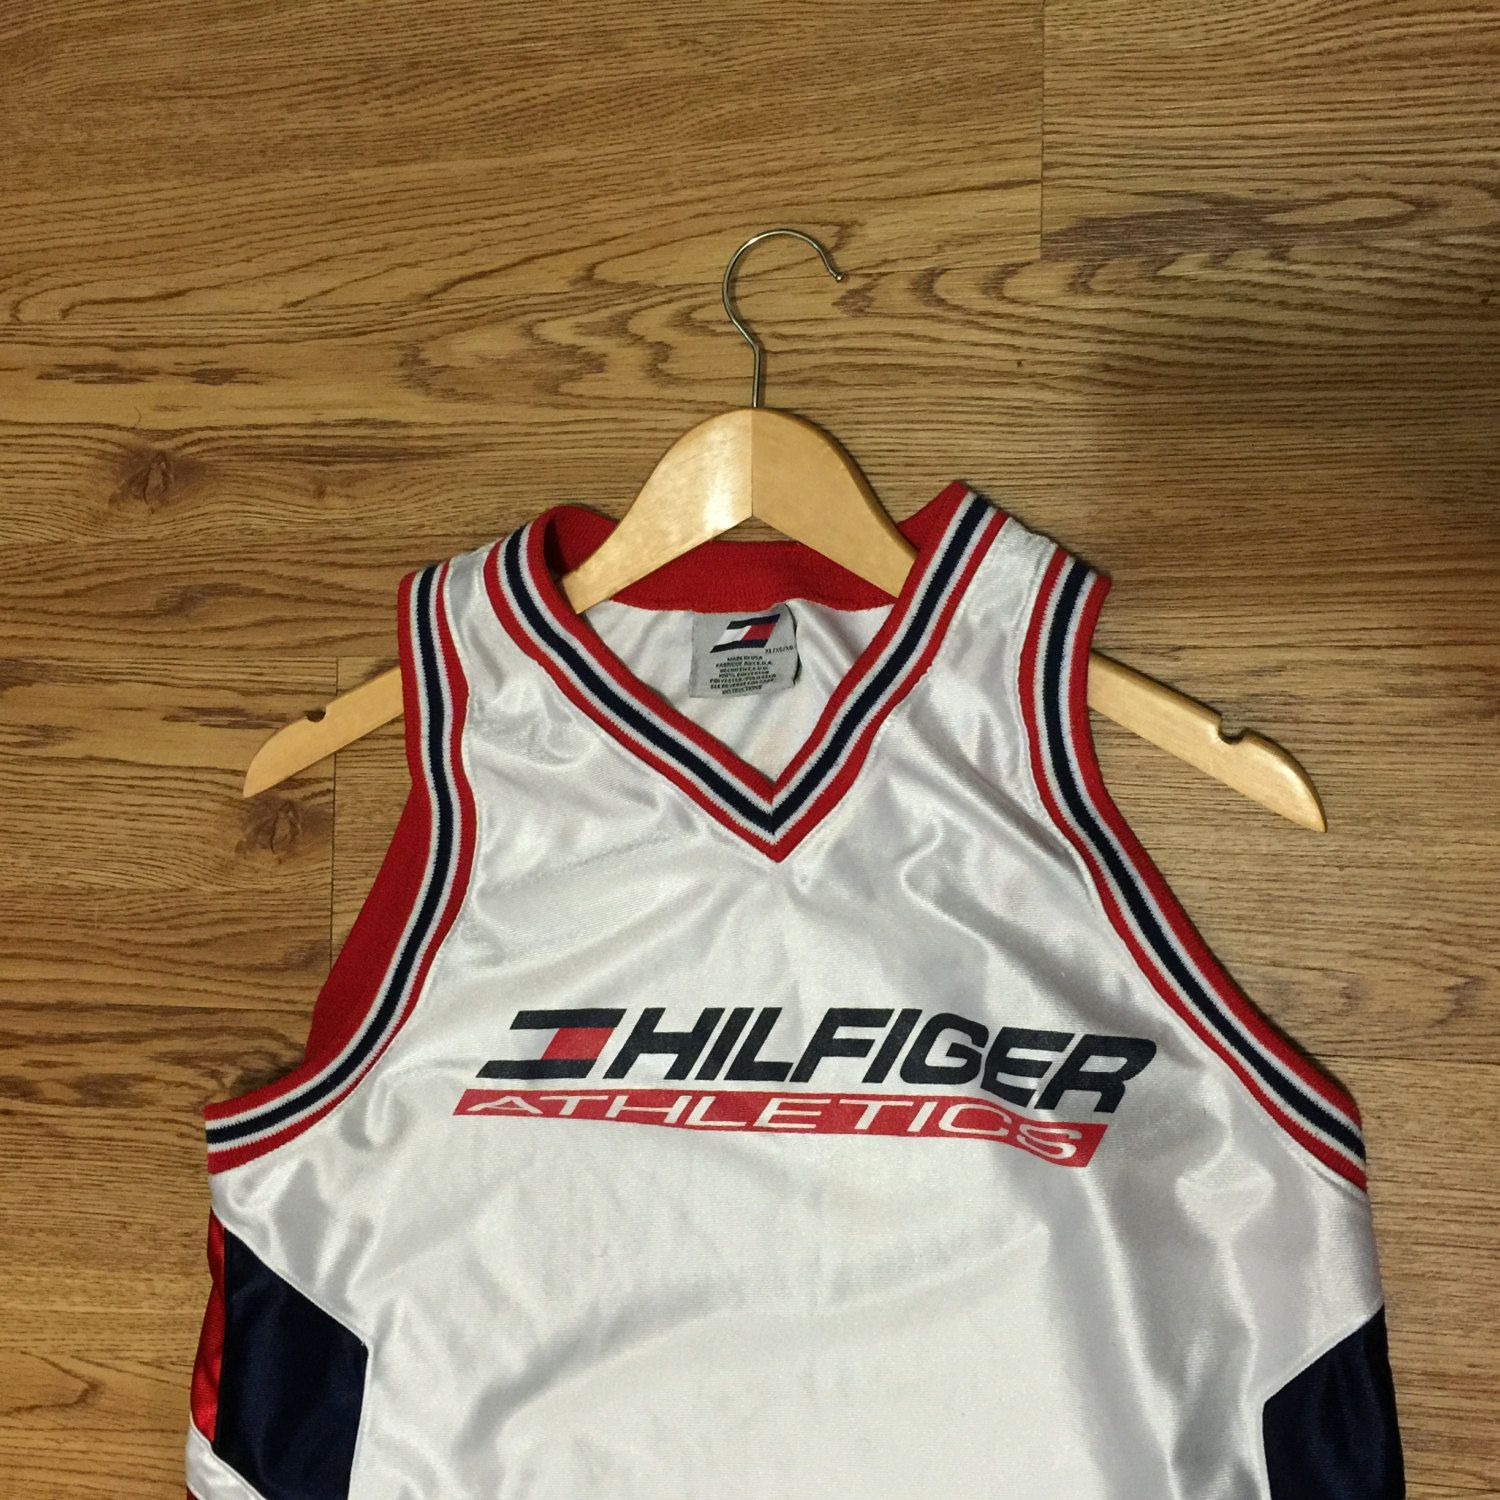 Vintage Tommy Hilfiger Athletics Basketball Jersey by VNTGvault on Etsy 7d2ff3934